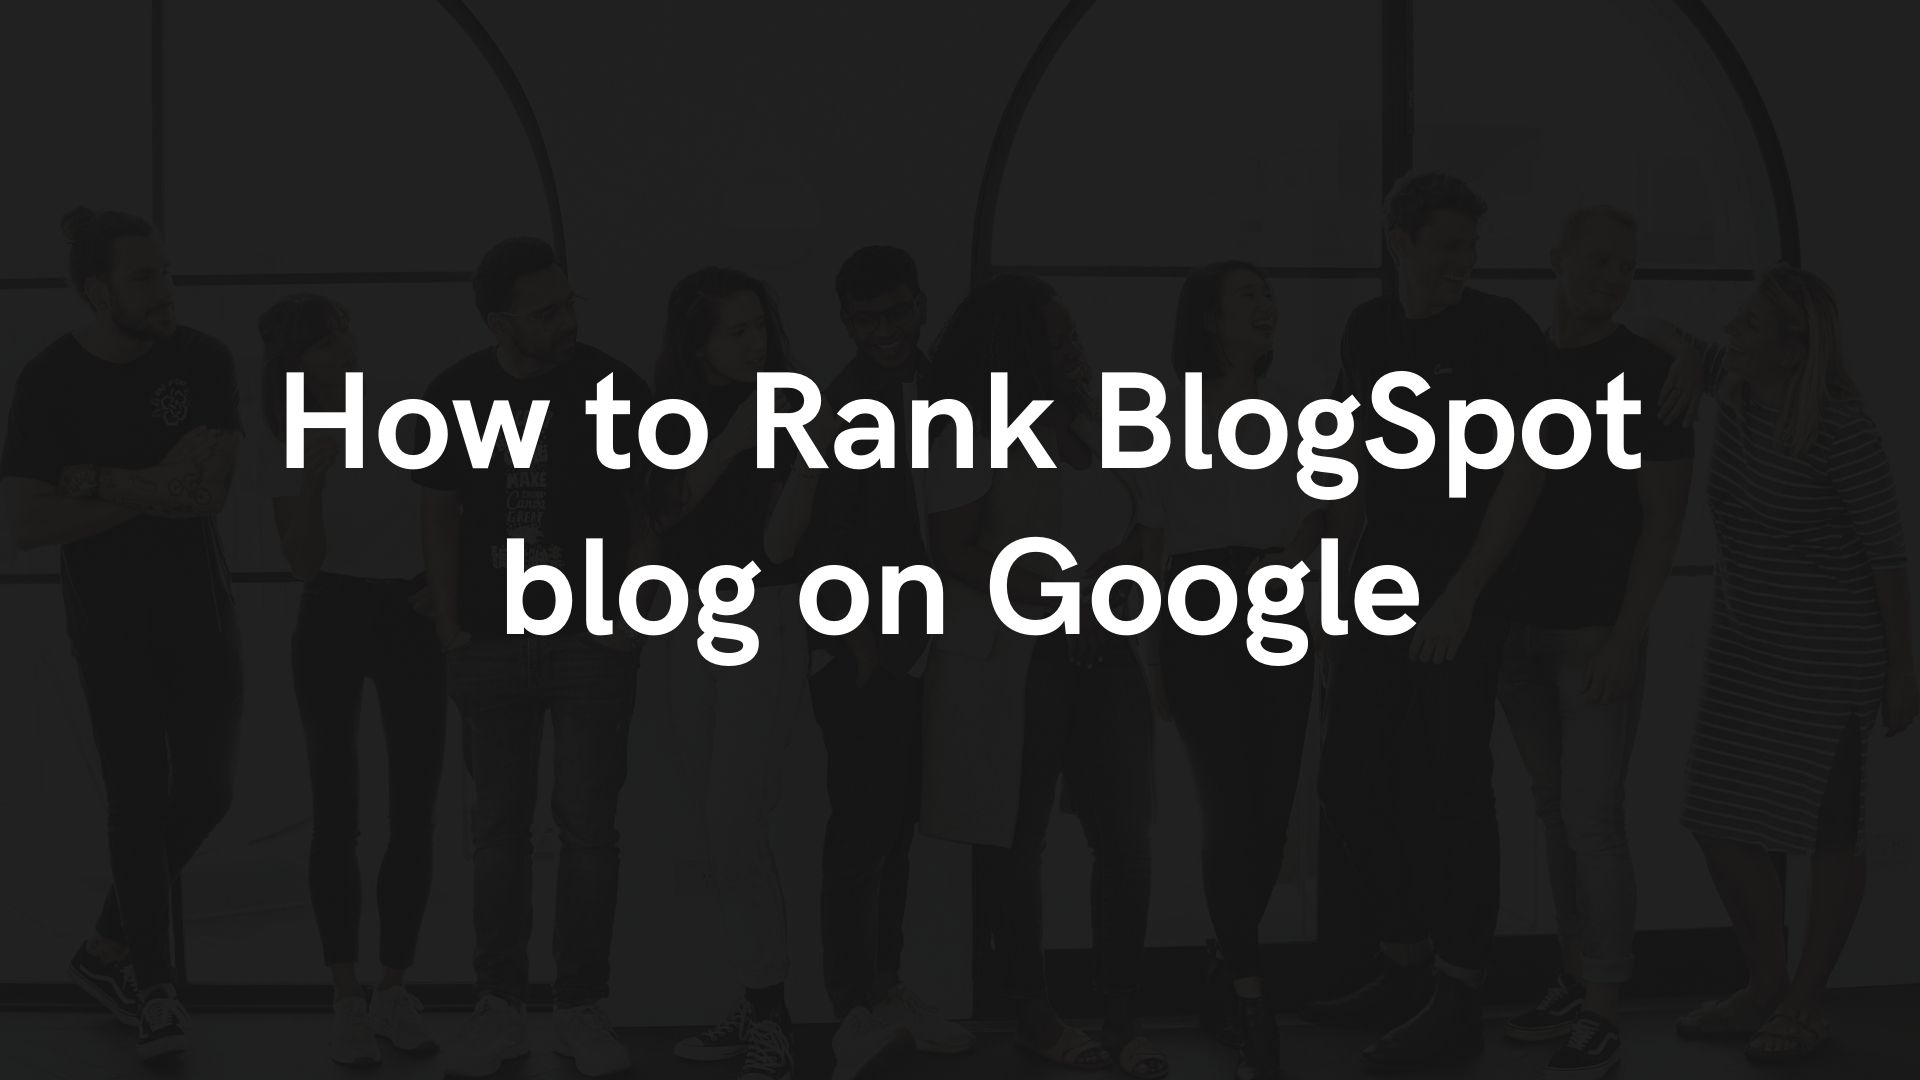 How to Rank Blogspot blog on Google